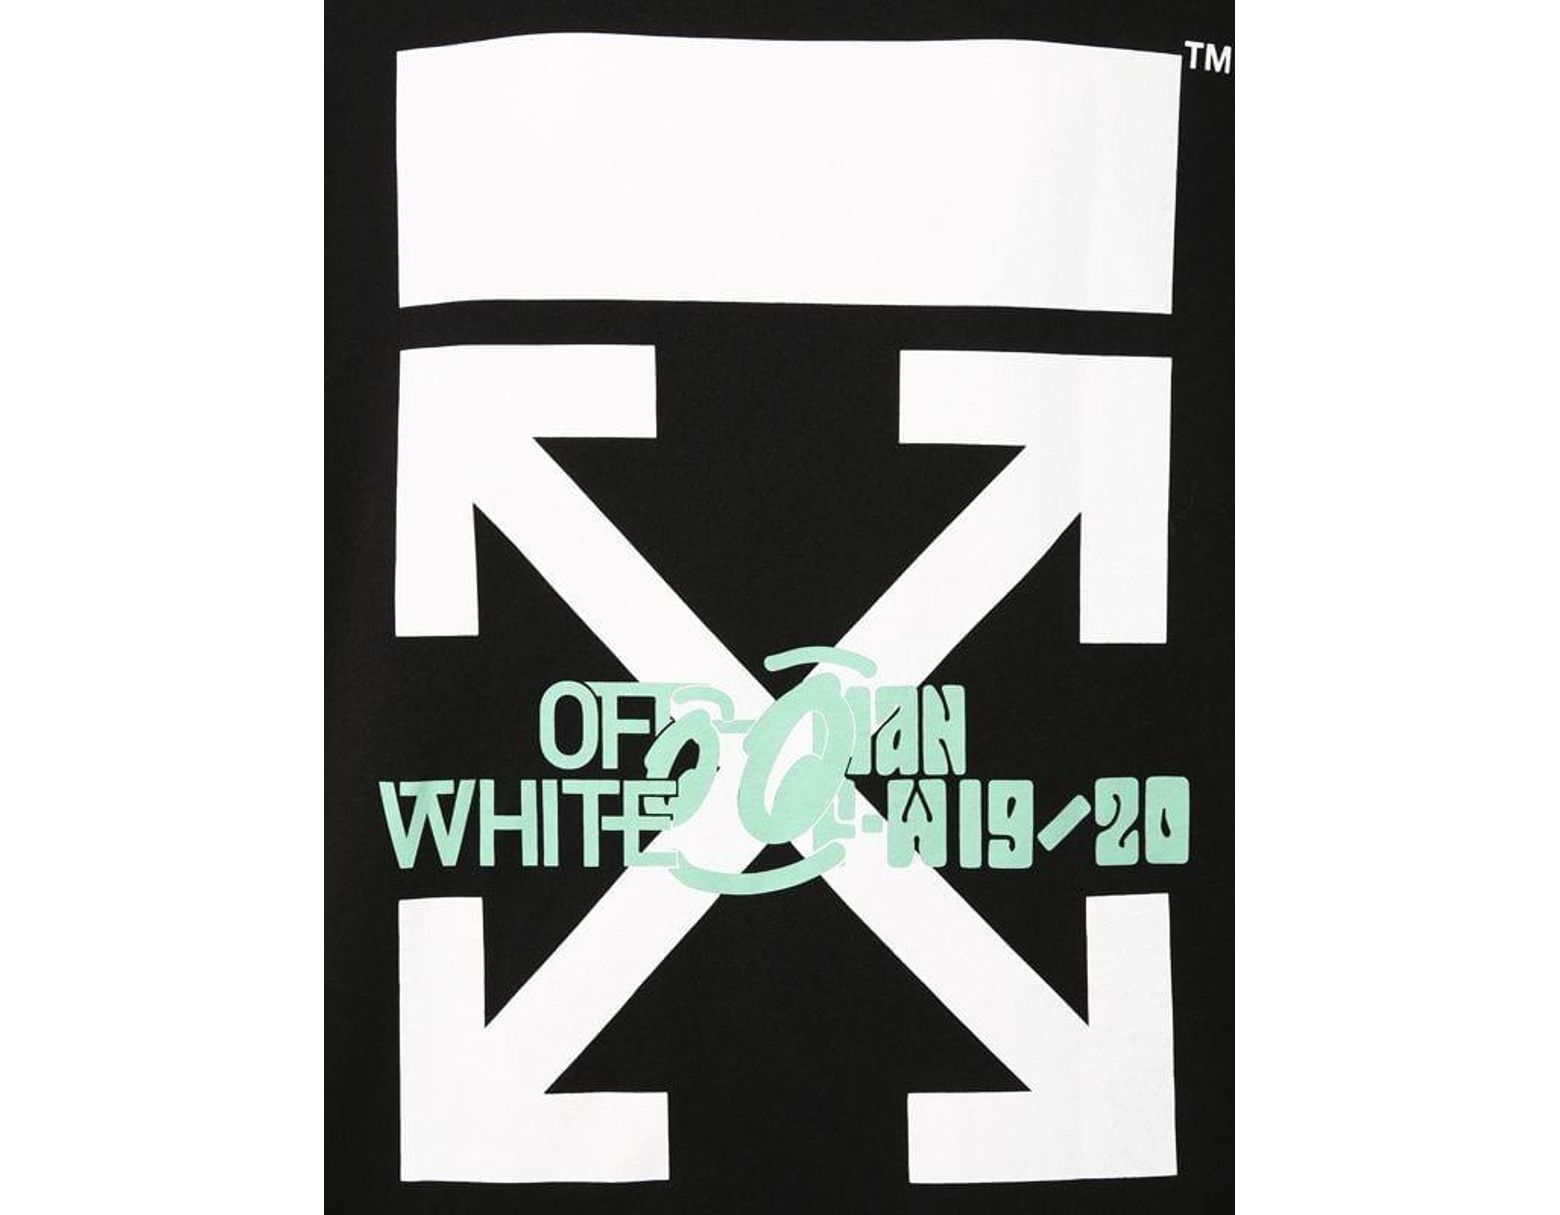 ea7c8005 Off-White c/o Virgil Abloh Oversize Waterfall Print Cotton T-shirt in Black  for Men - Lyst